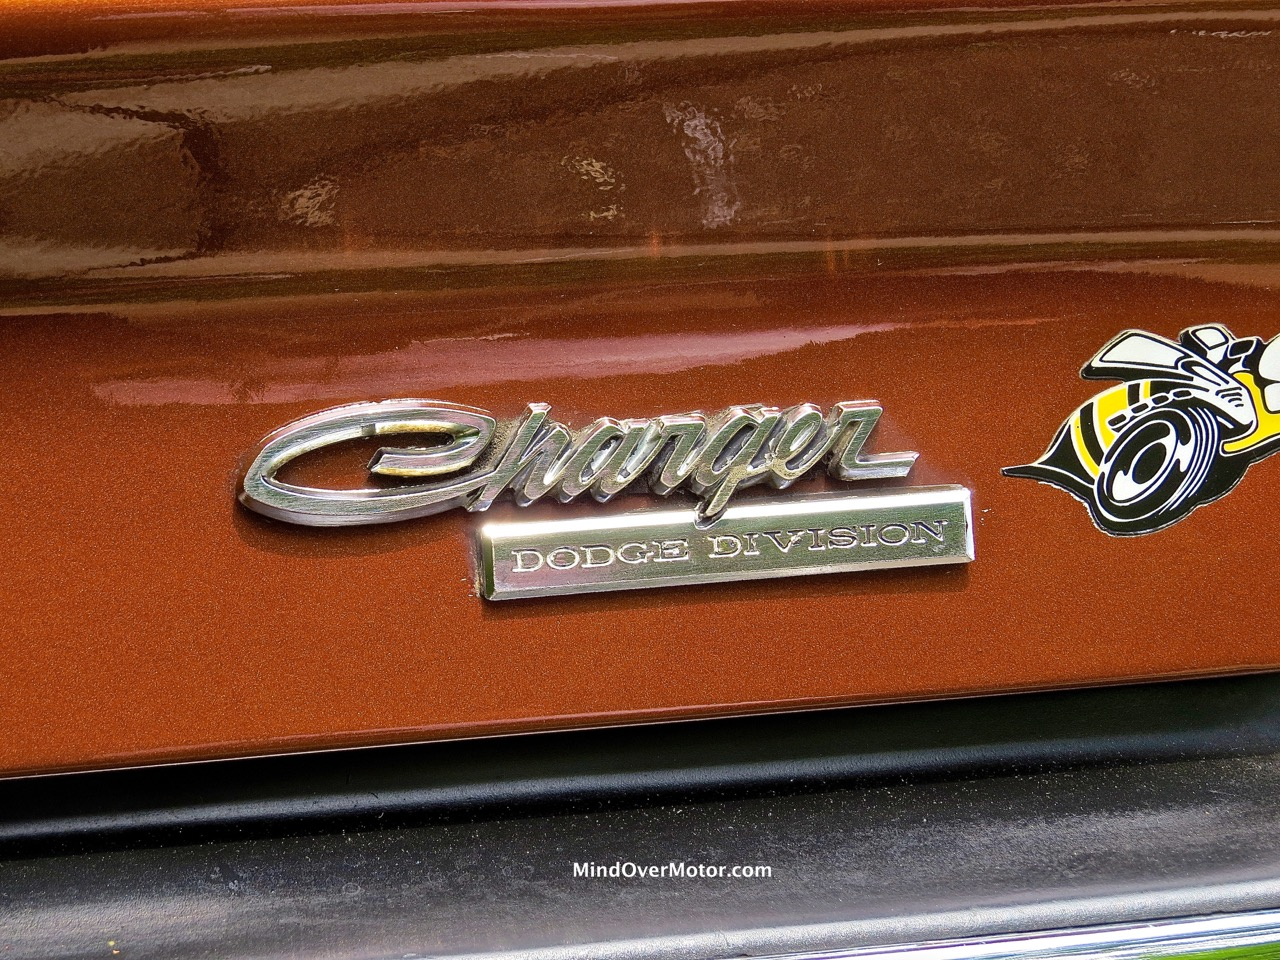 1974 Dodge Charger Badge